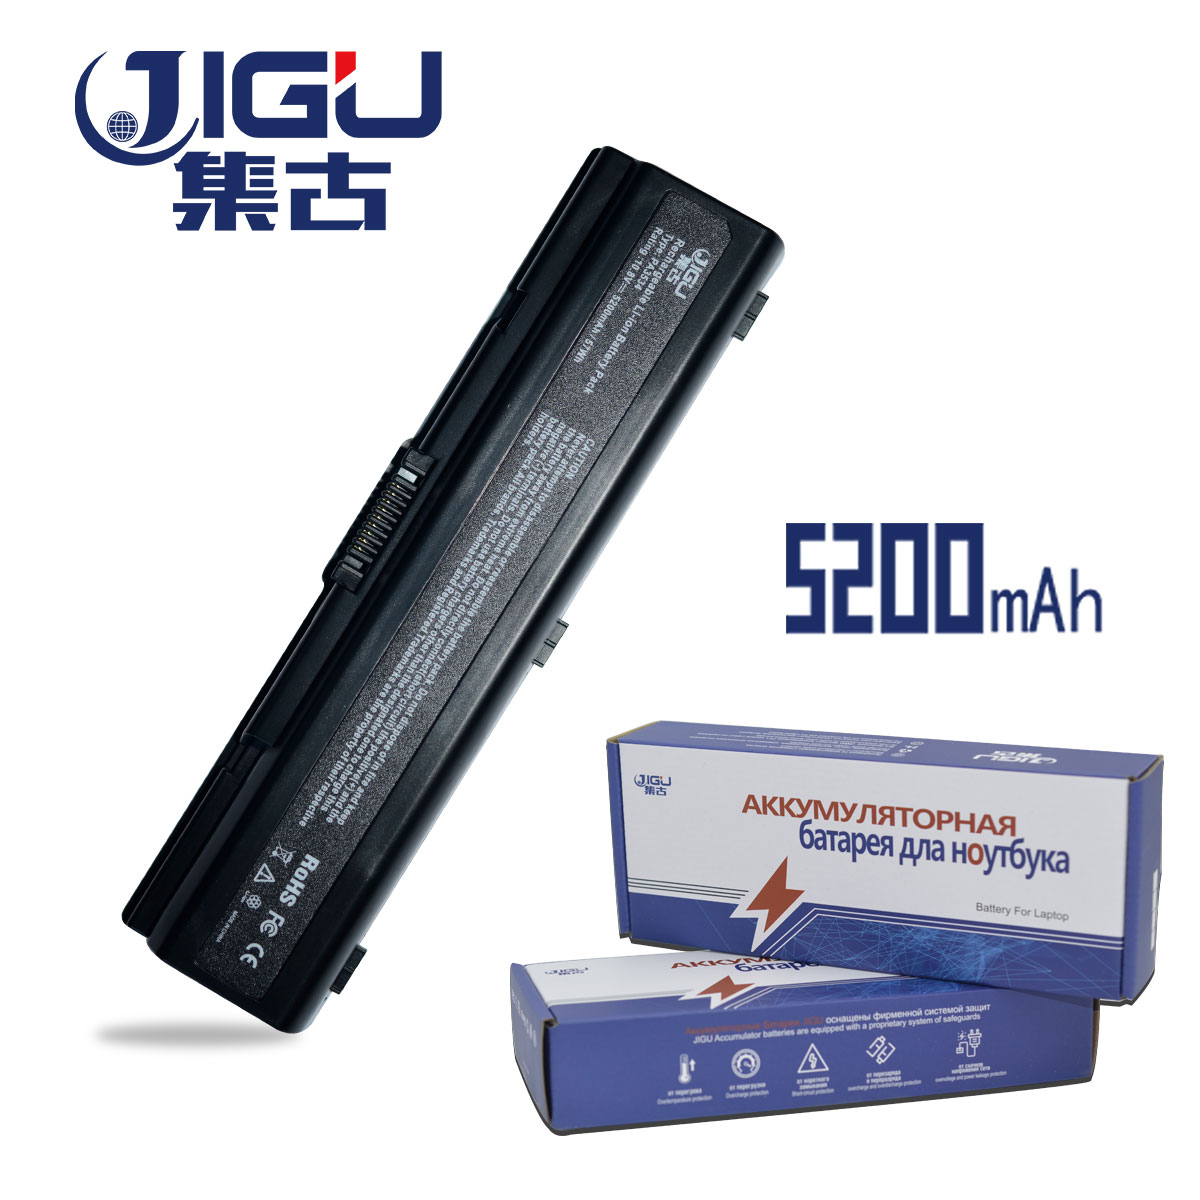 JIGU Pa3534u 1brs Battery For Toshiba PA3533U-1BAS PA3534U-1BAS PA3534U-1BRS Satellite A200 A205 A210 A215 L300 L450D A300 A500 ls 3481p m72m hd2400 k000056390 k000051970 k000047450 128mb vga video card for toshiba a200 a205 a215 s205 a300 a305 a500